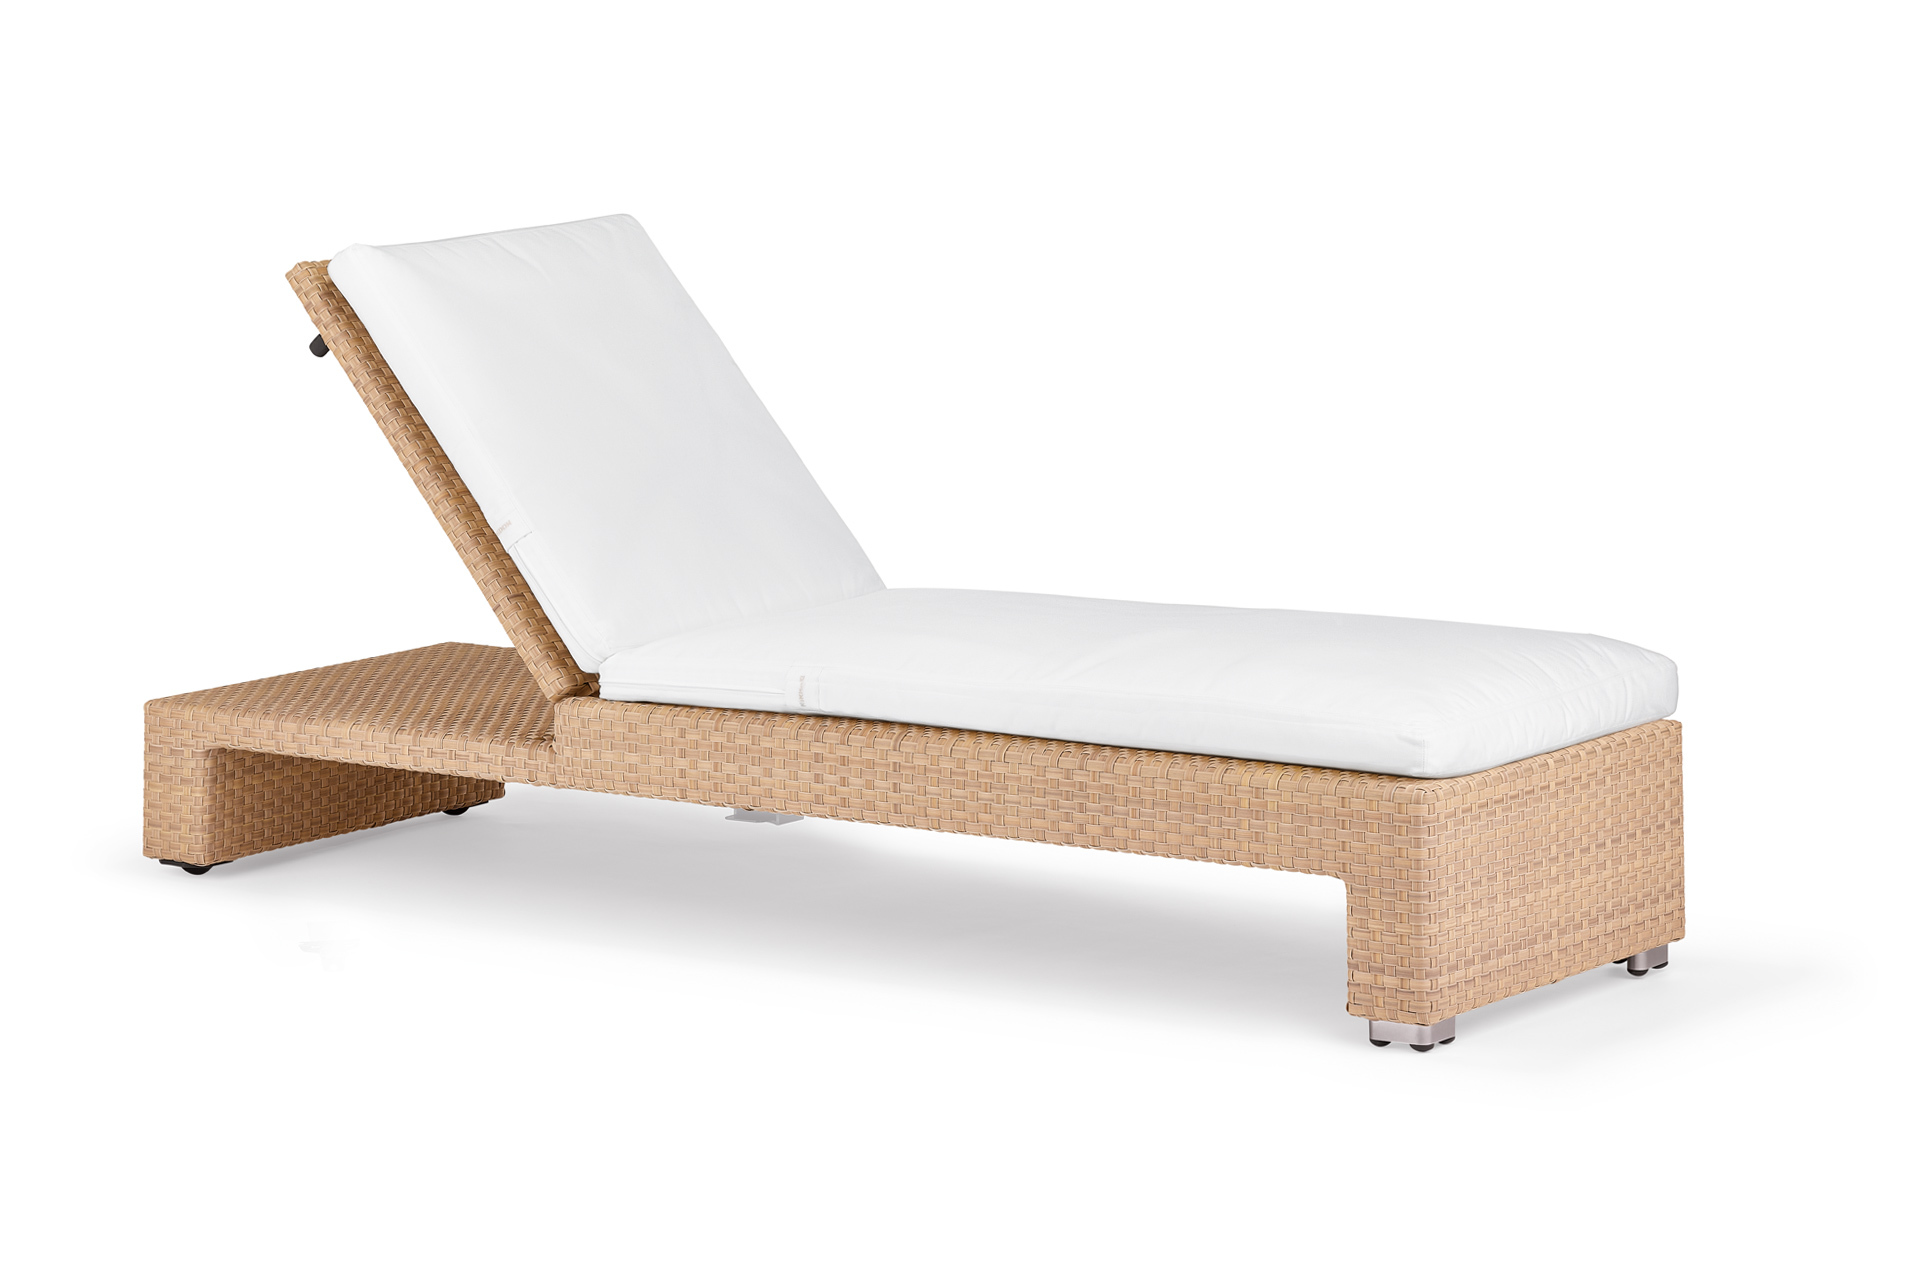 Merveilleux LOUNGE Beach Chair; LOUNGE Beach Chair ...